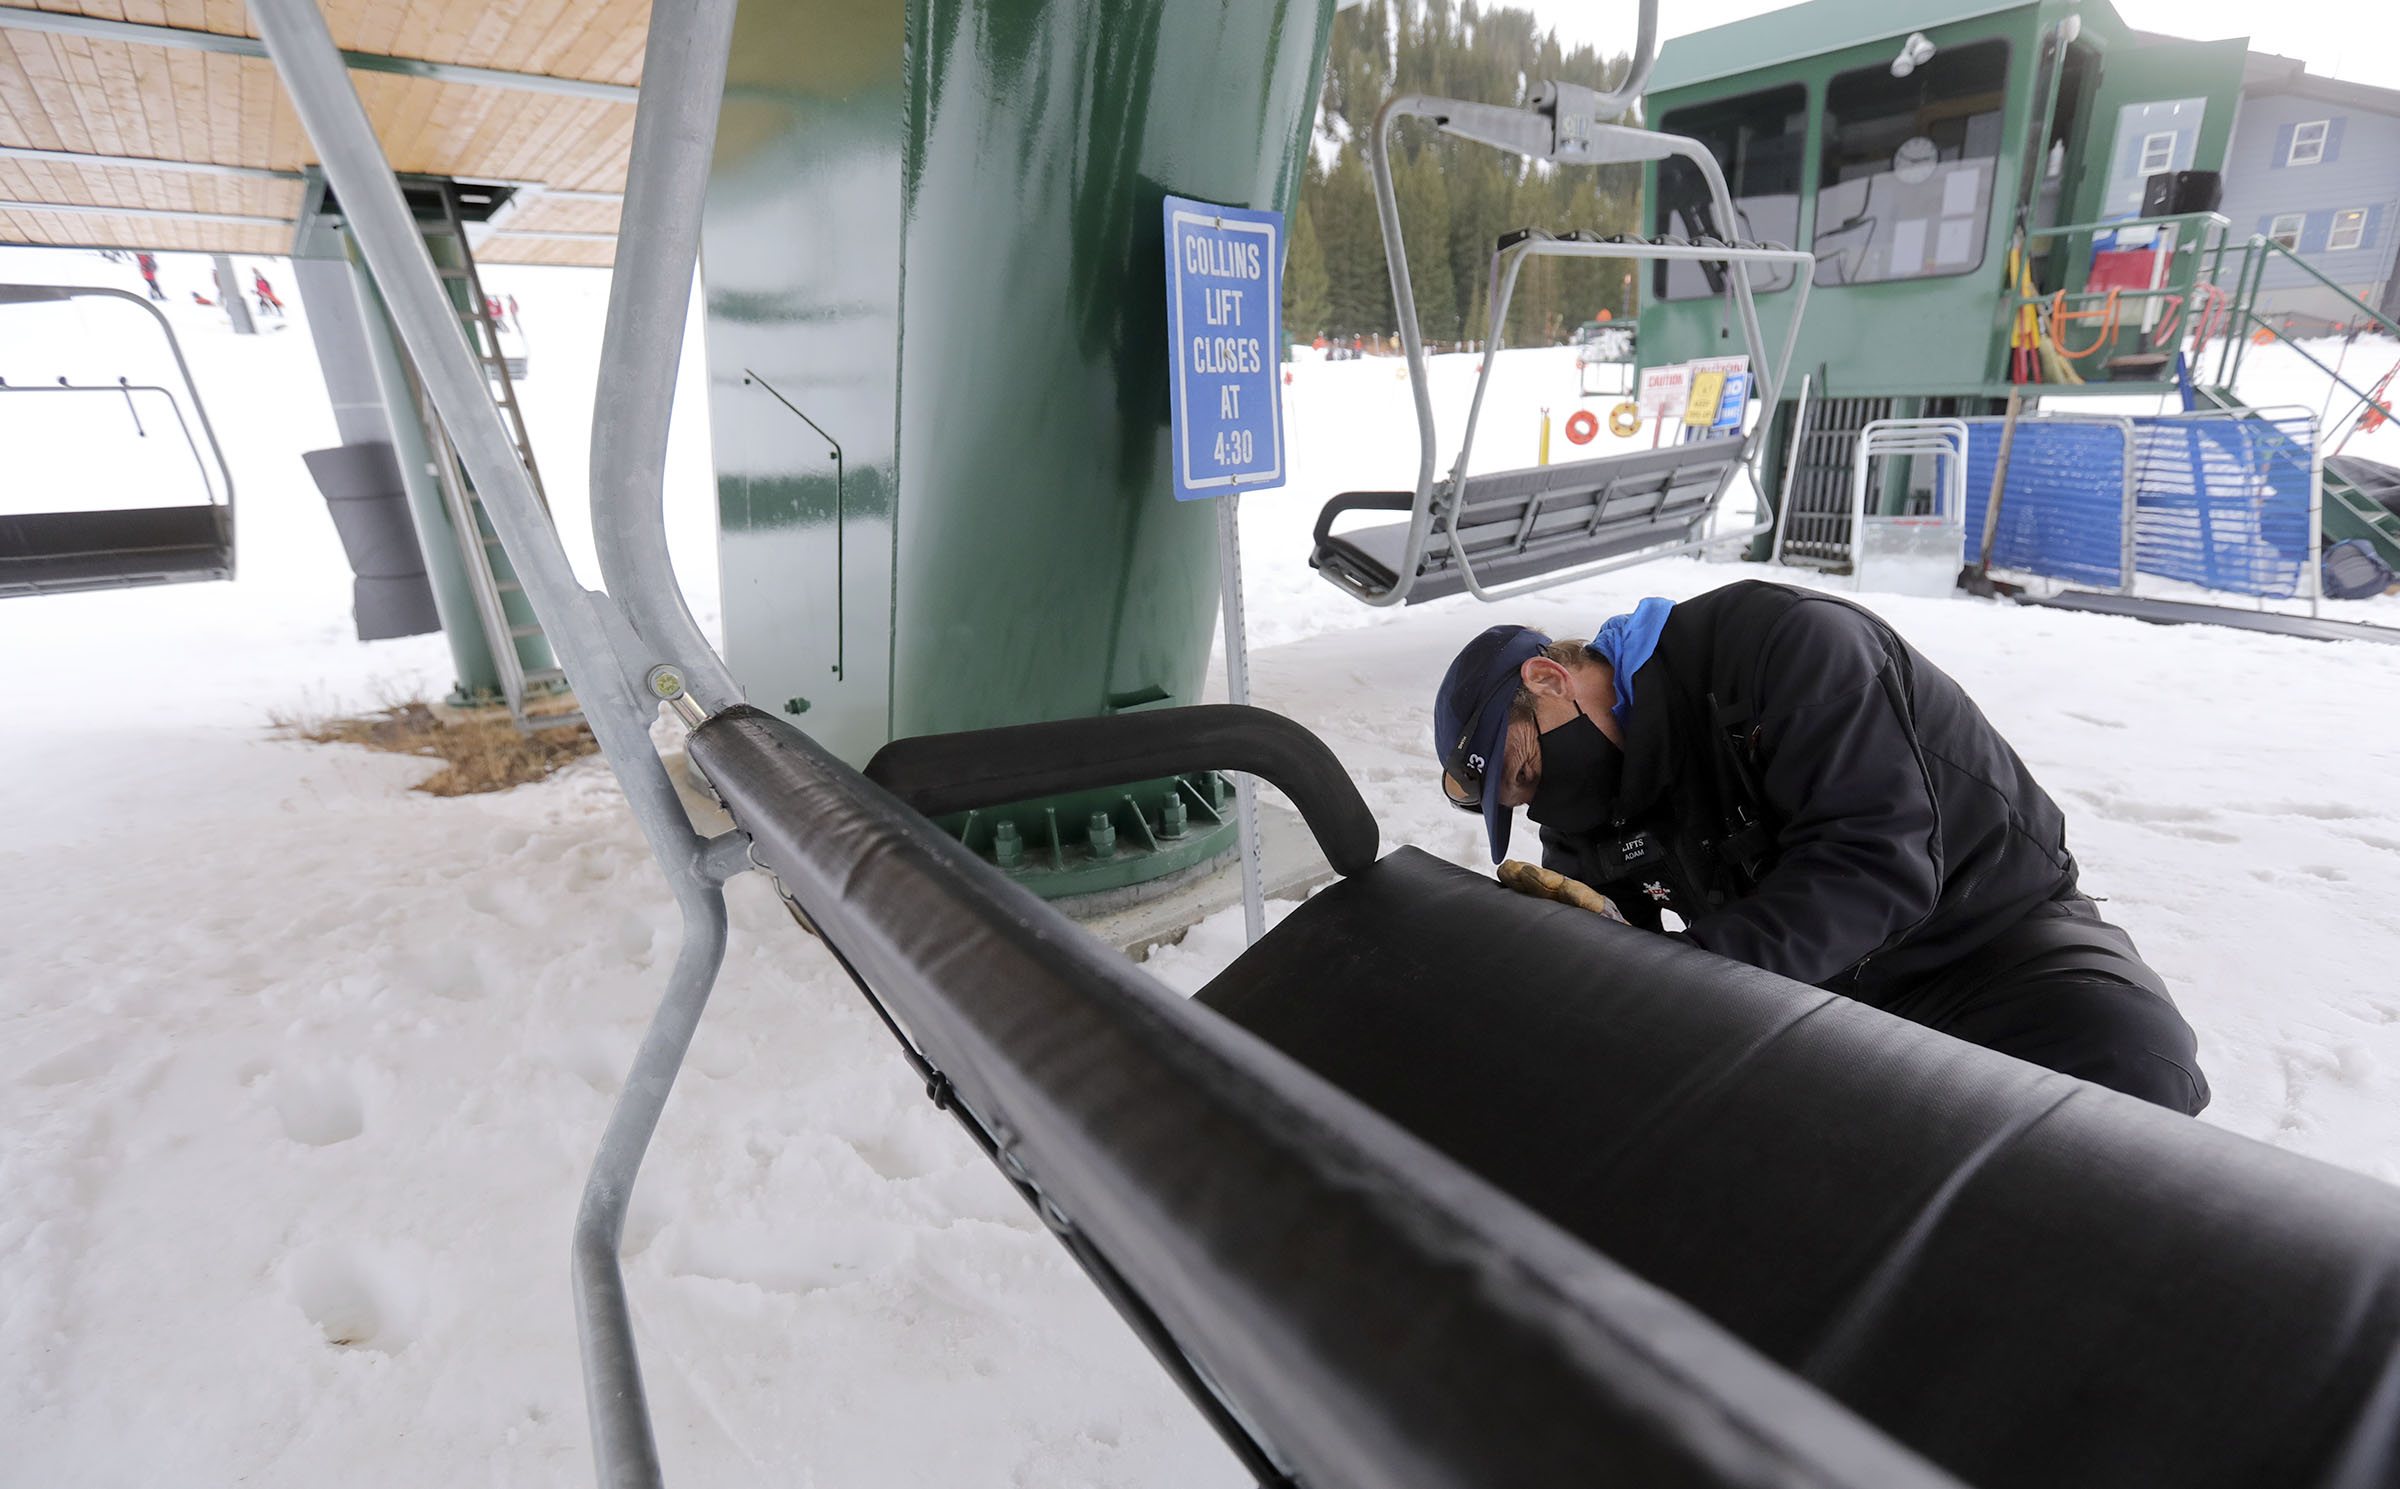 Alta lift foreman Adam Genovese preps chairs on the Collins lift at Alta Ski Area in Alta on Wednesday, Nov. 18, 2020.